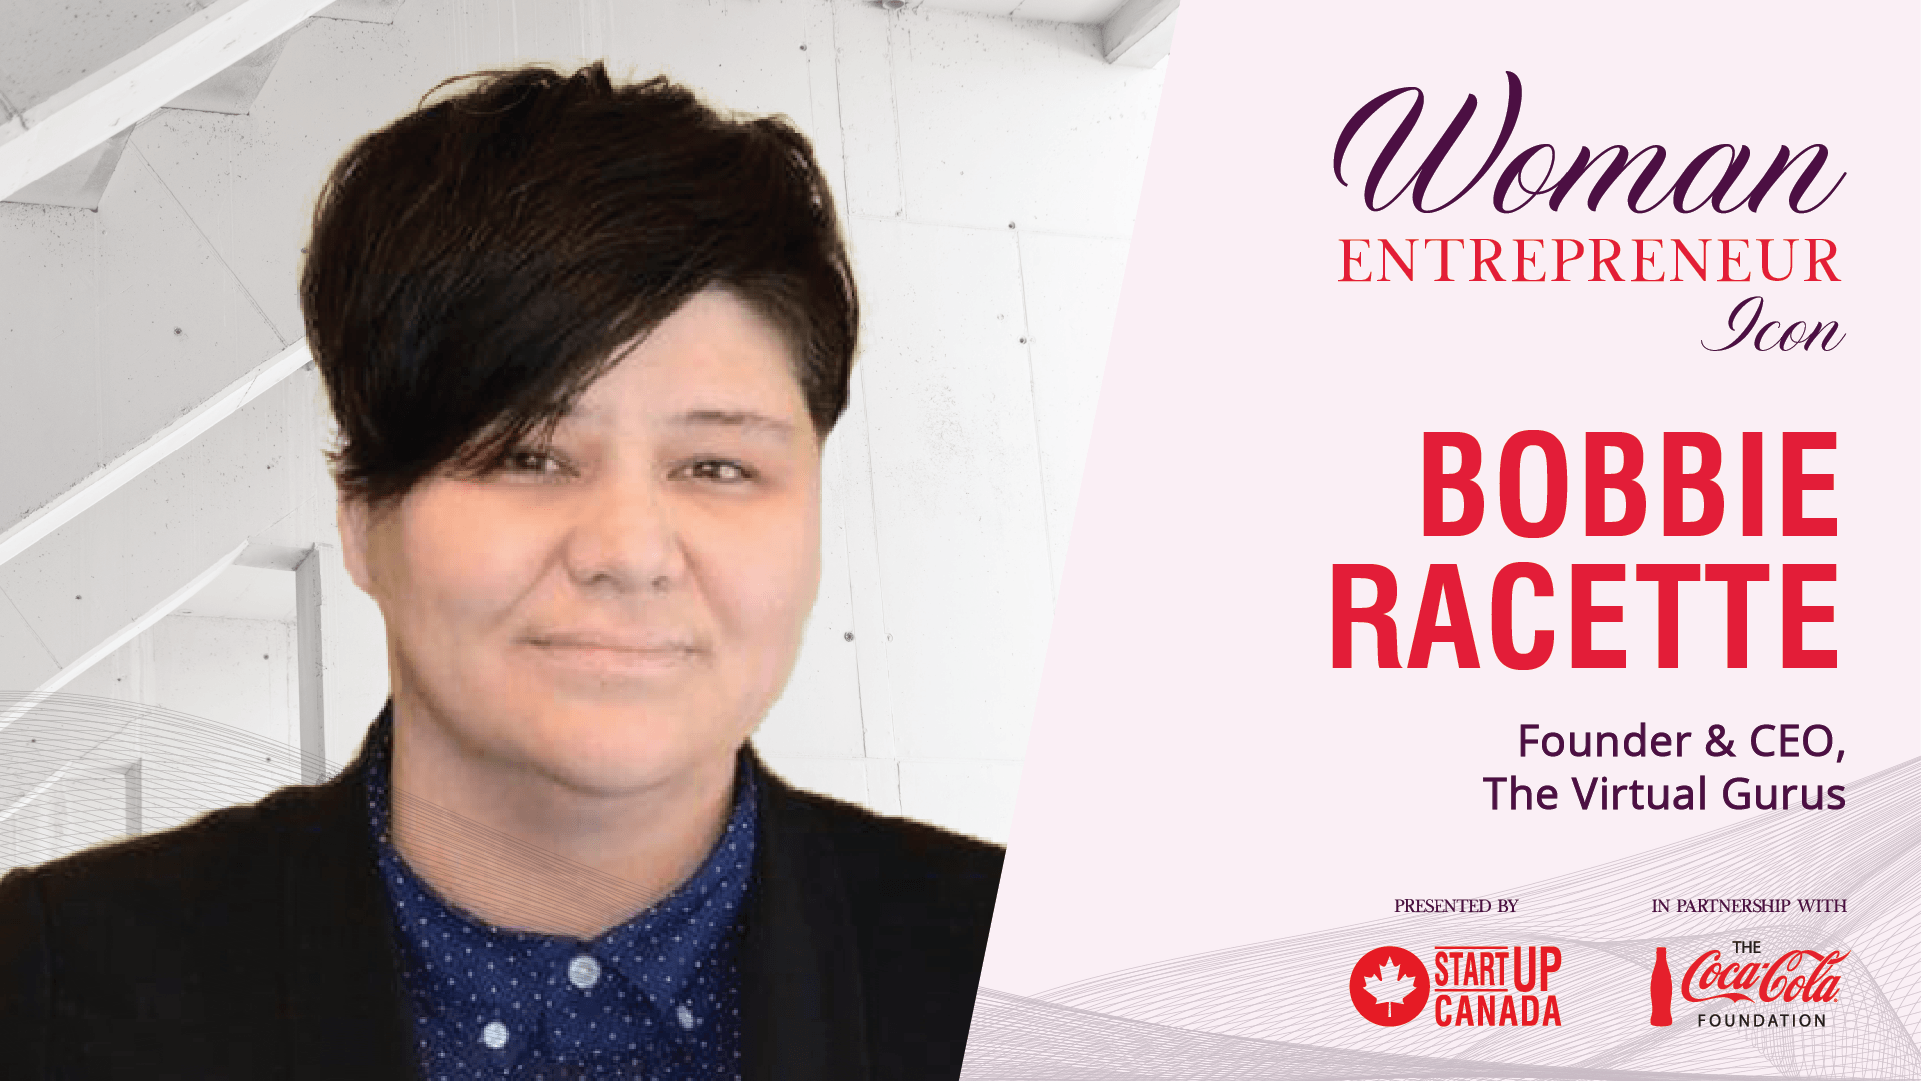 Photo of a woman with a pixie haircut—Woman Entrepreneur Icon, Bobbie Racette, Founder & CEO of The Virtual Gurus, Powered by Startup Canada, In partnership with the Coca-Cola Foundation